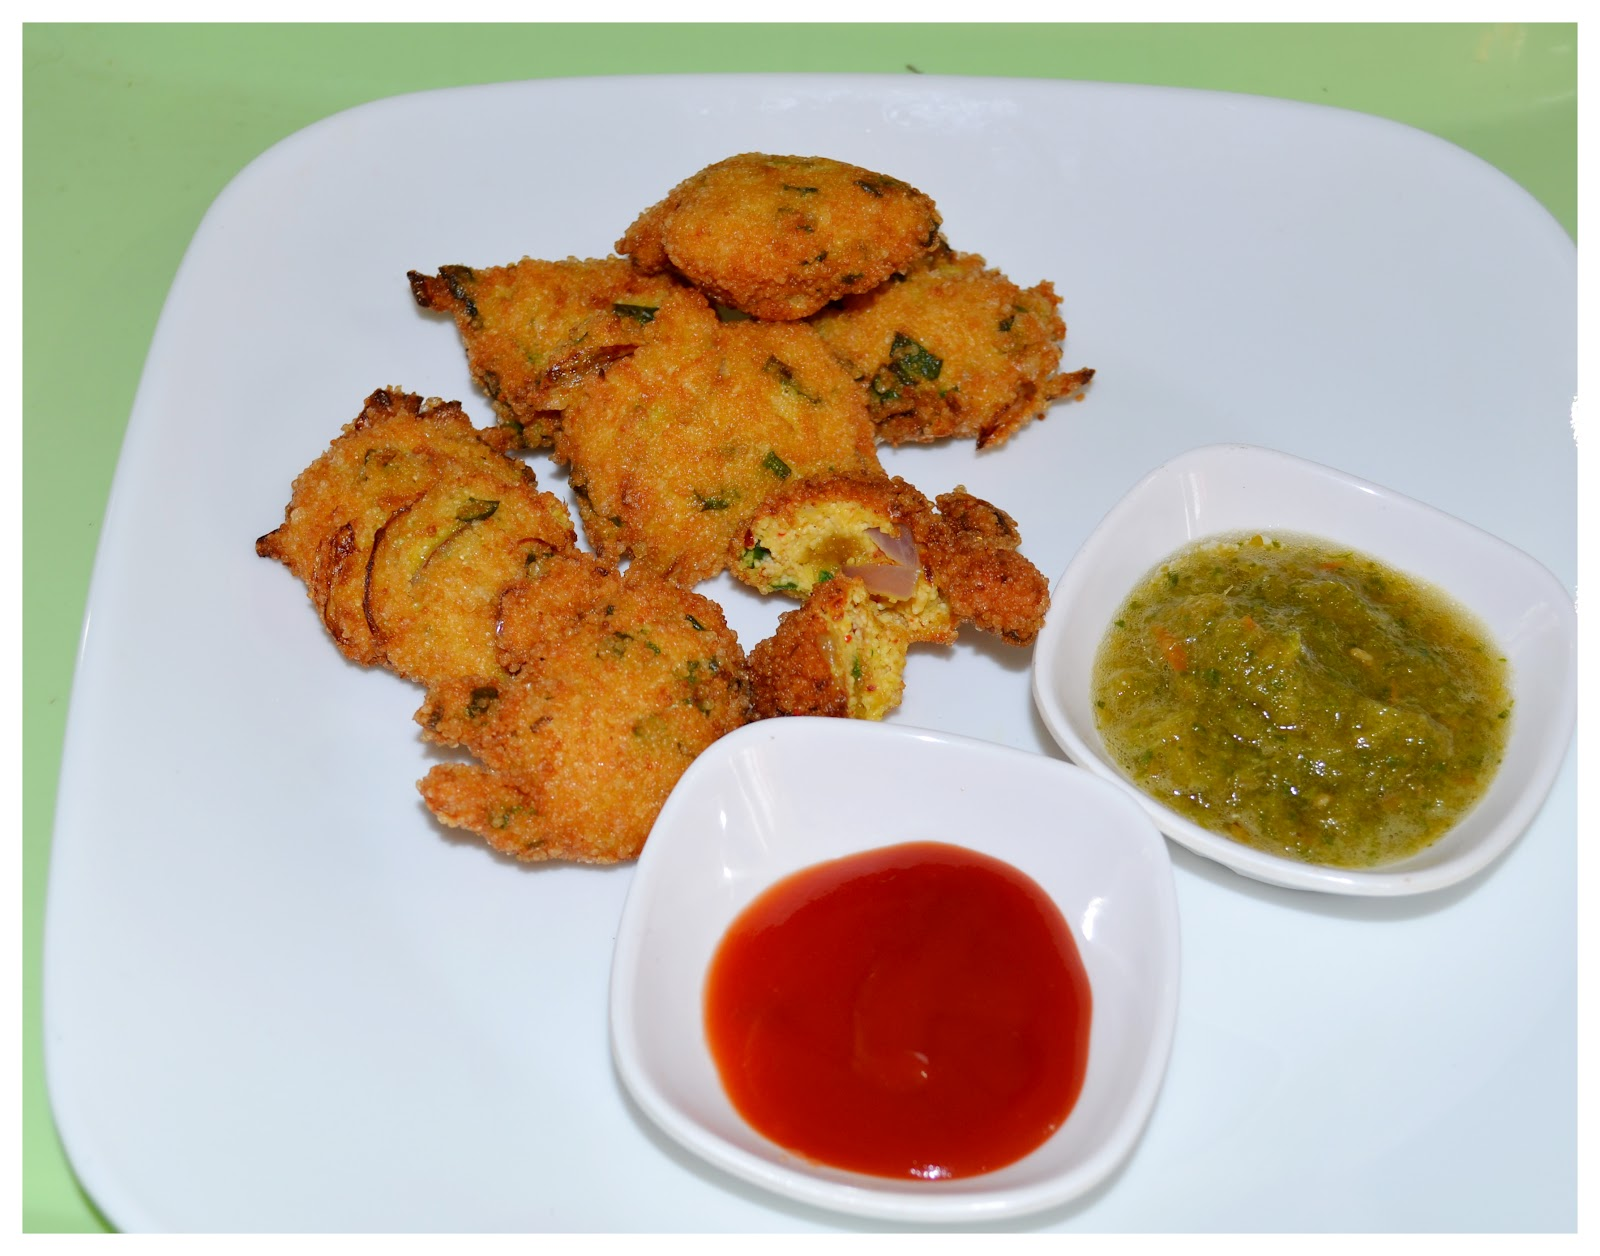 Fried fish eggs nutritious recipes for picky eater children for Fish eggs food